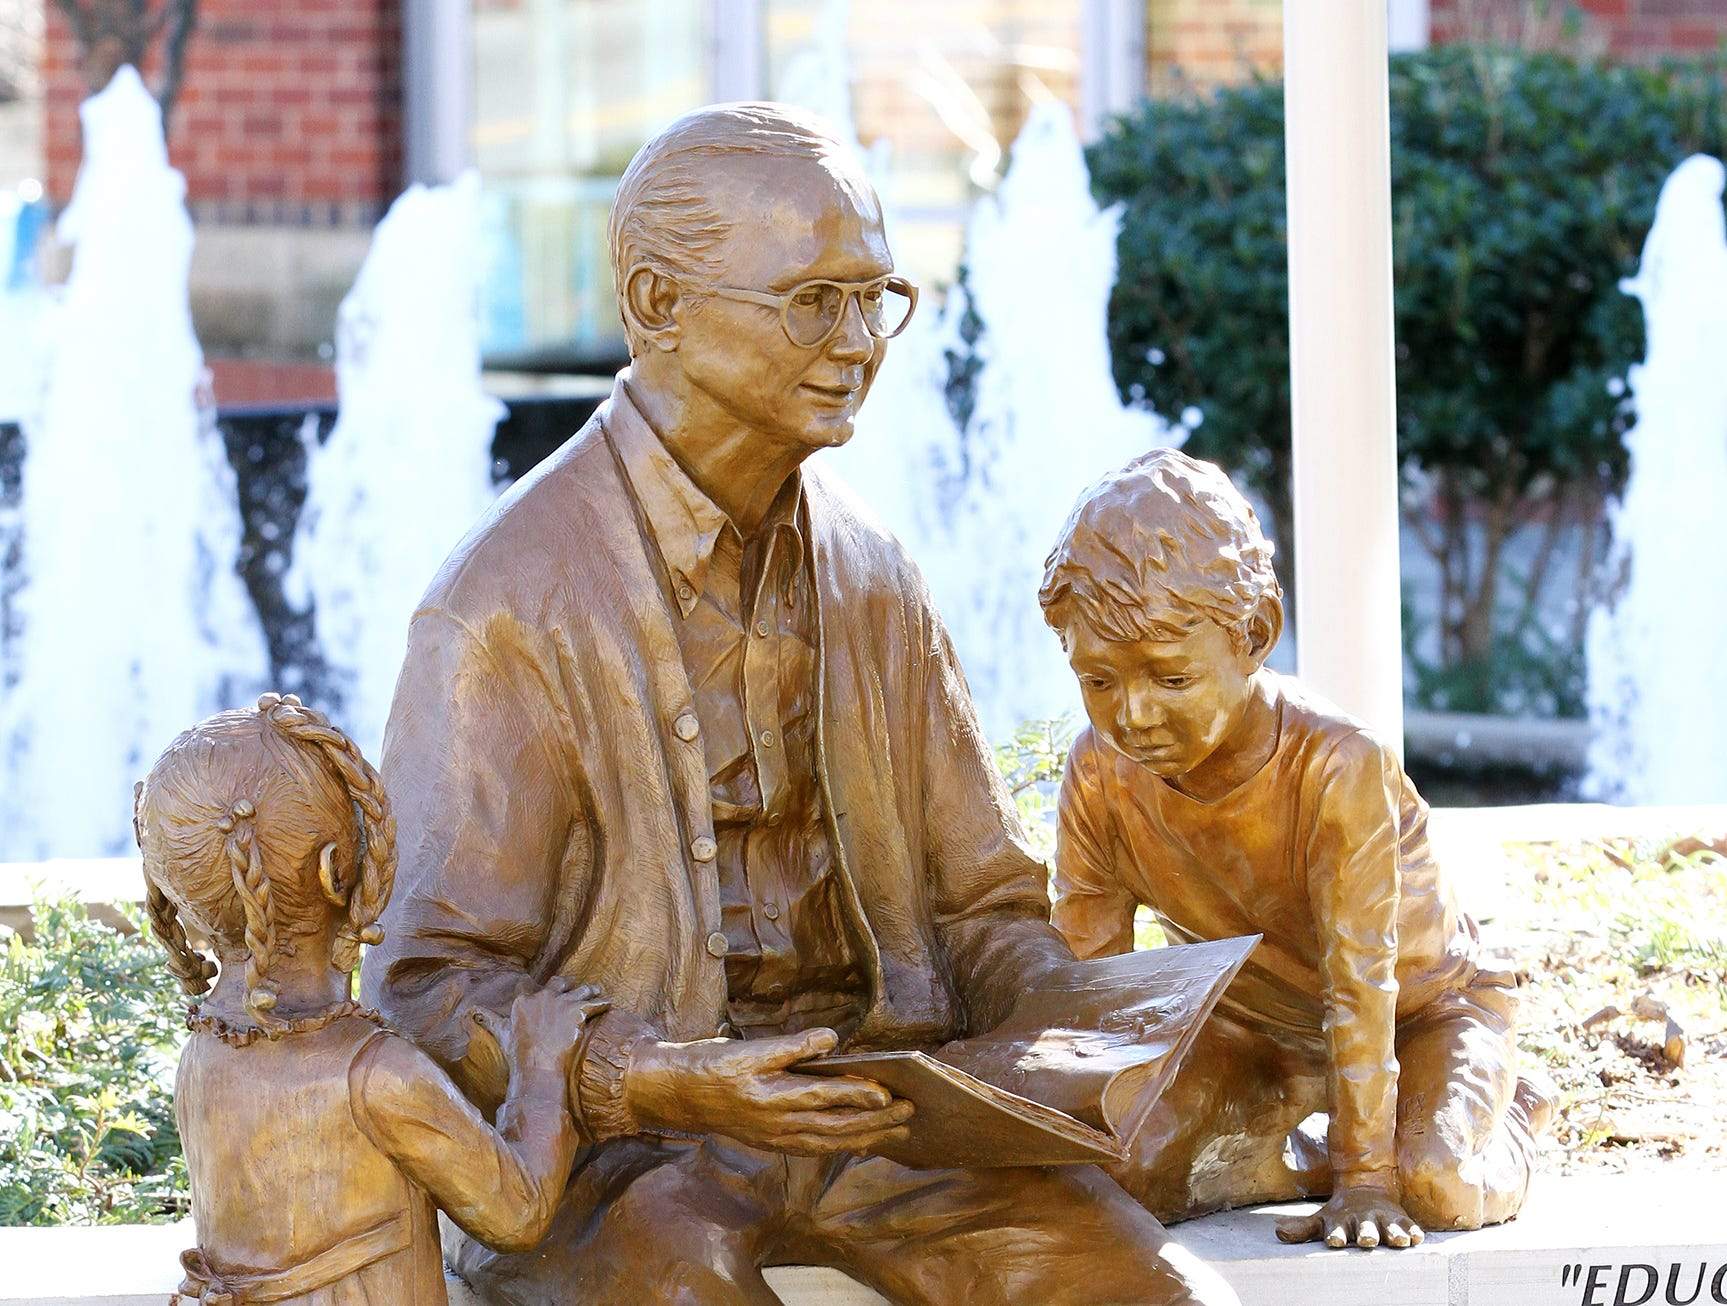 Dick Riley by Zan Wells was created to honor Dick Riley's outstanding contributions to Greenville and the State of South Carolina